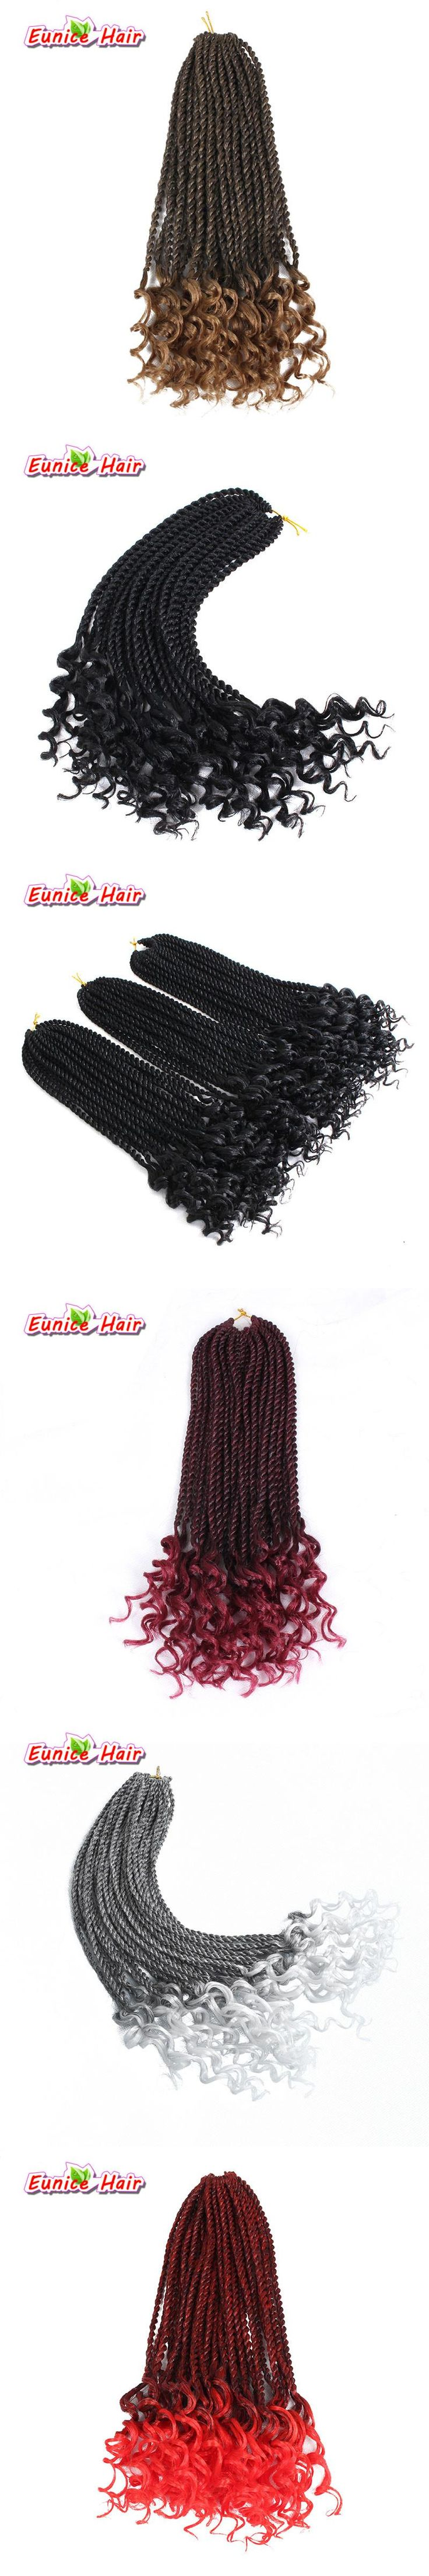 New Crochet Braids 16 inch ombre burgundy Synthetic Pre-curled Crochet Hair Extensions Curly Senegalese Twist Braid Hair